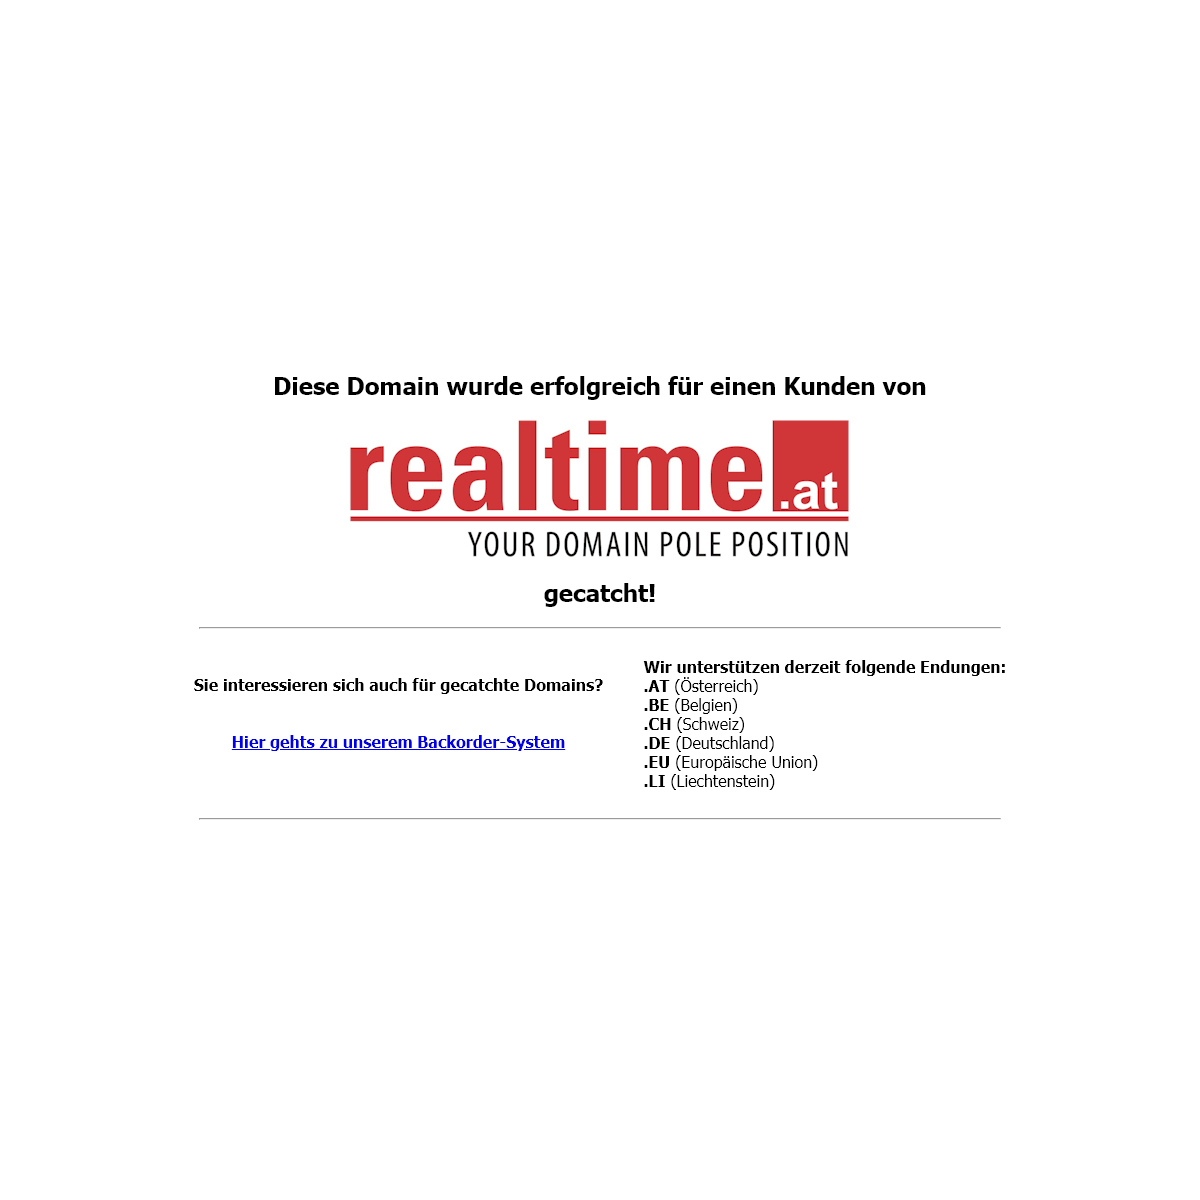 realtime.at - Domain gecatcht